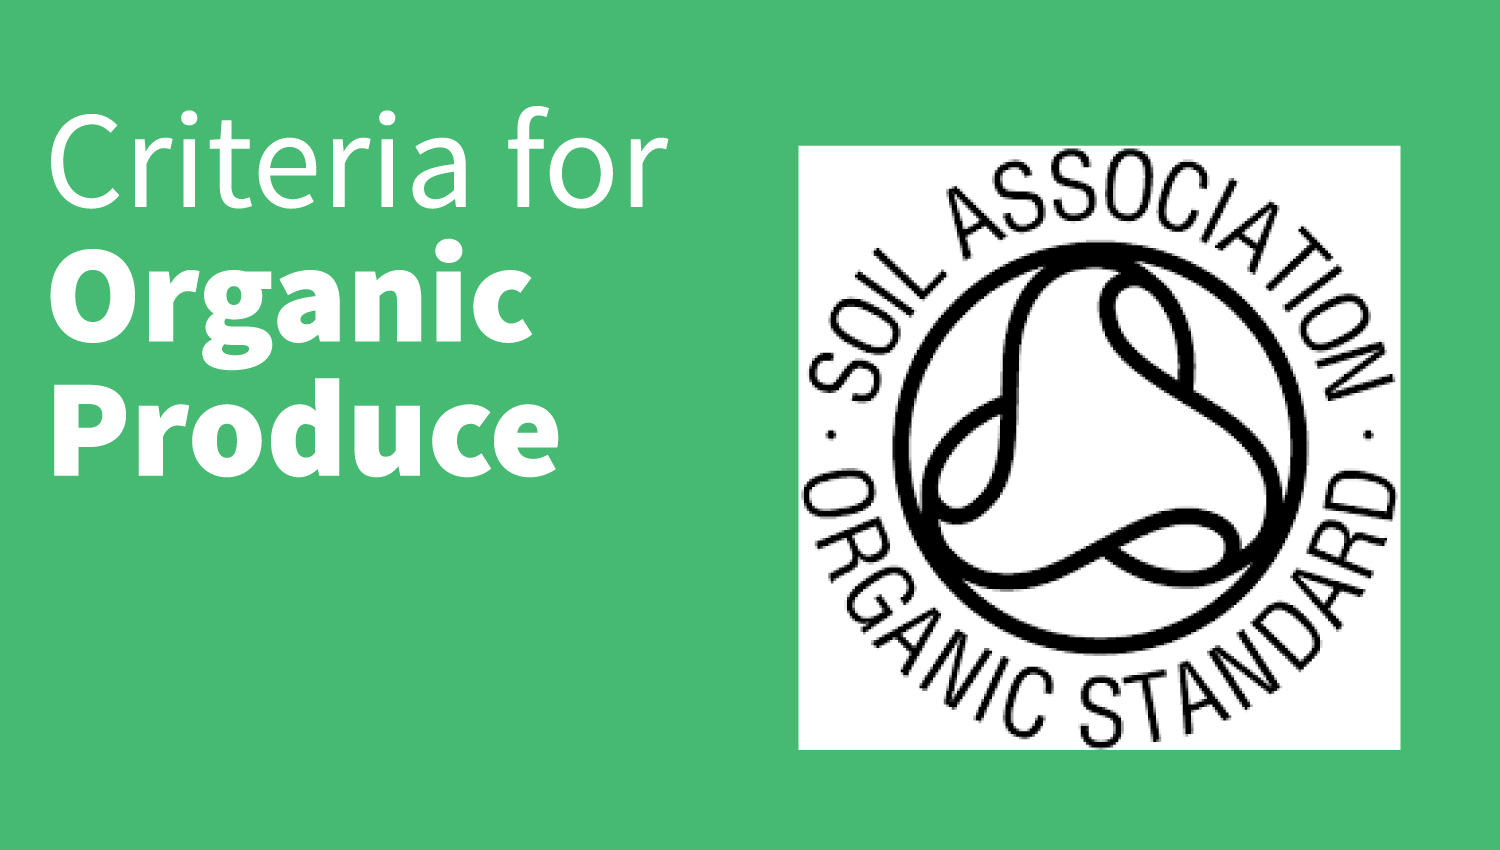 Link to Soil Association Criteria for Organic Produce